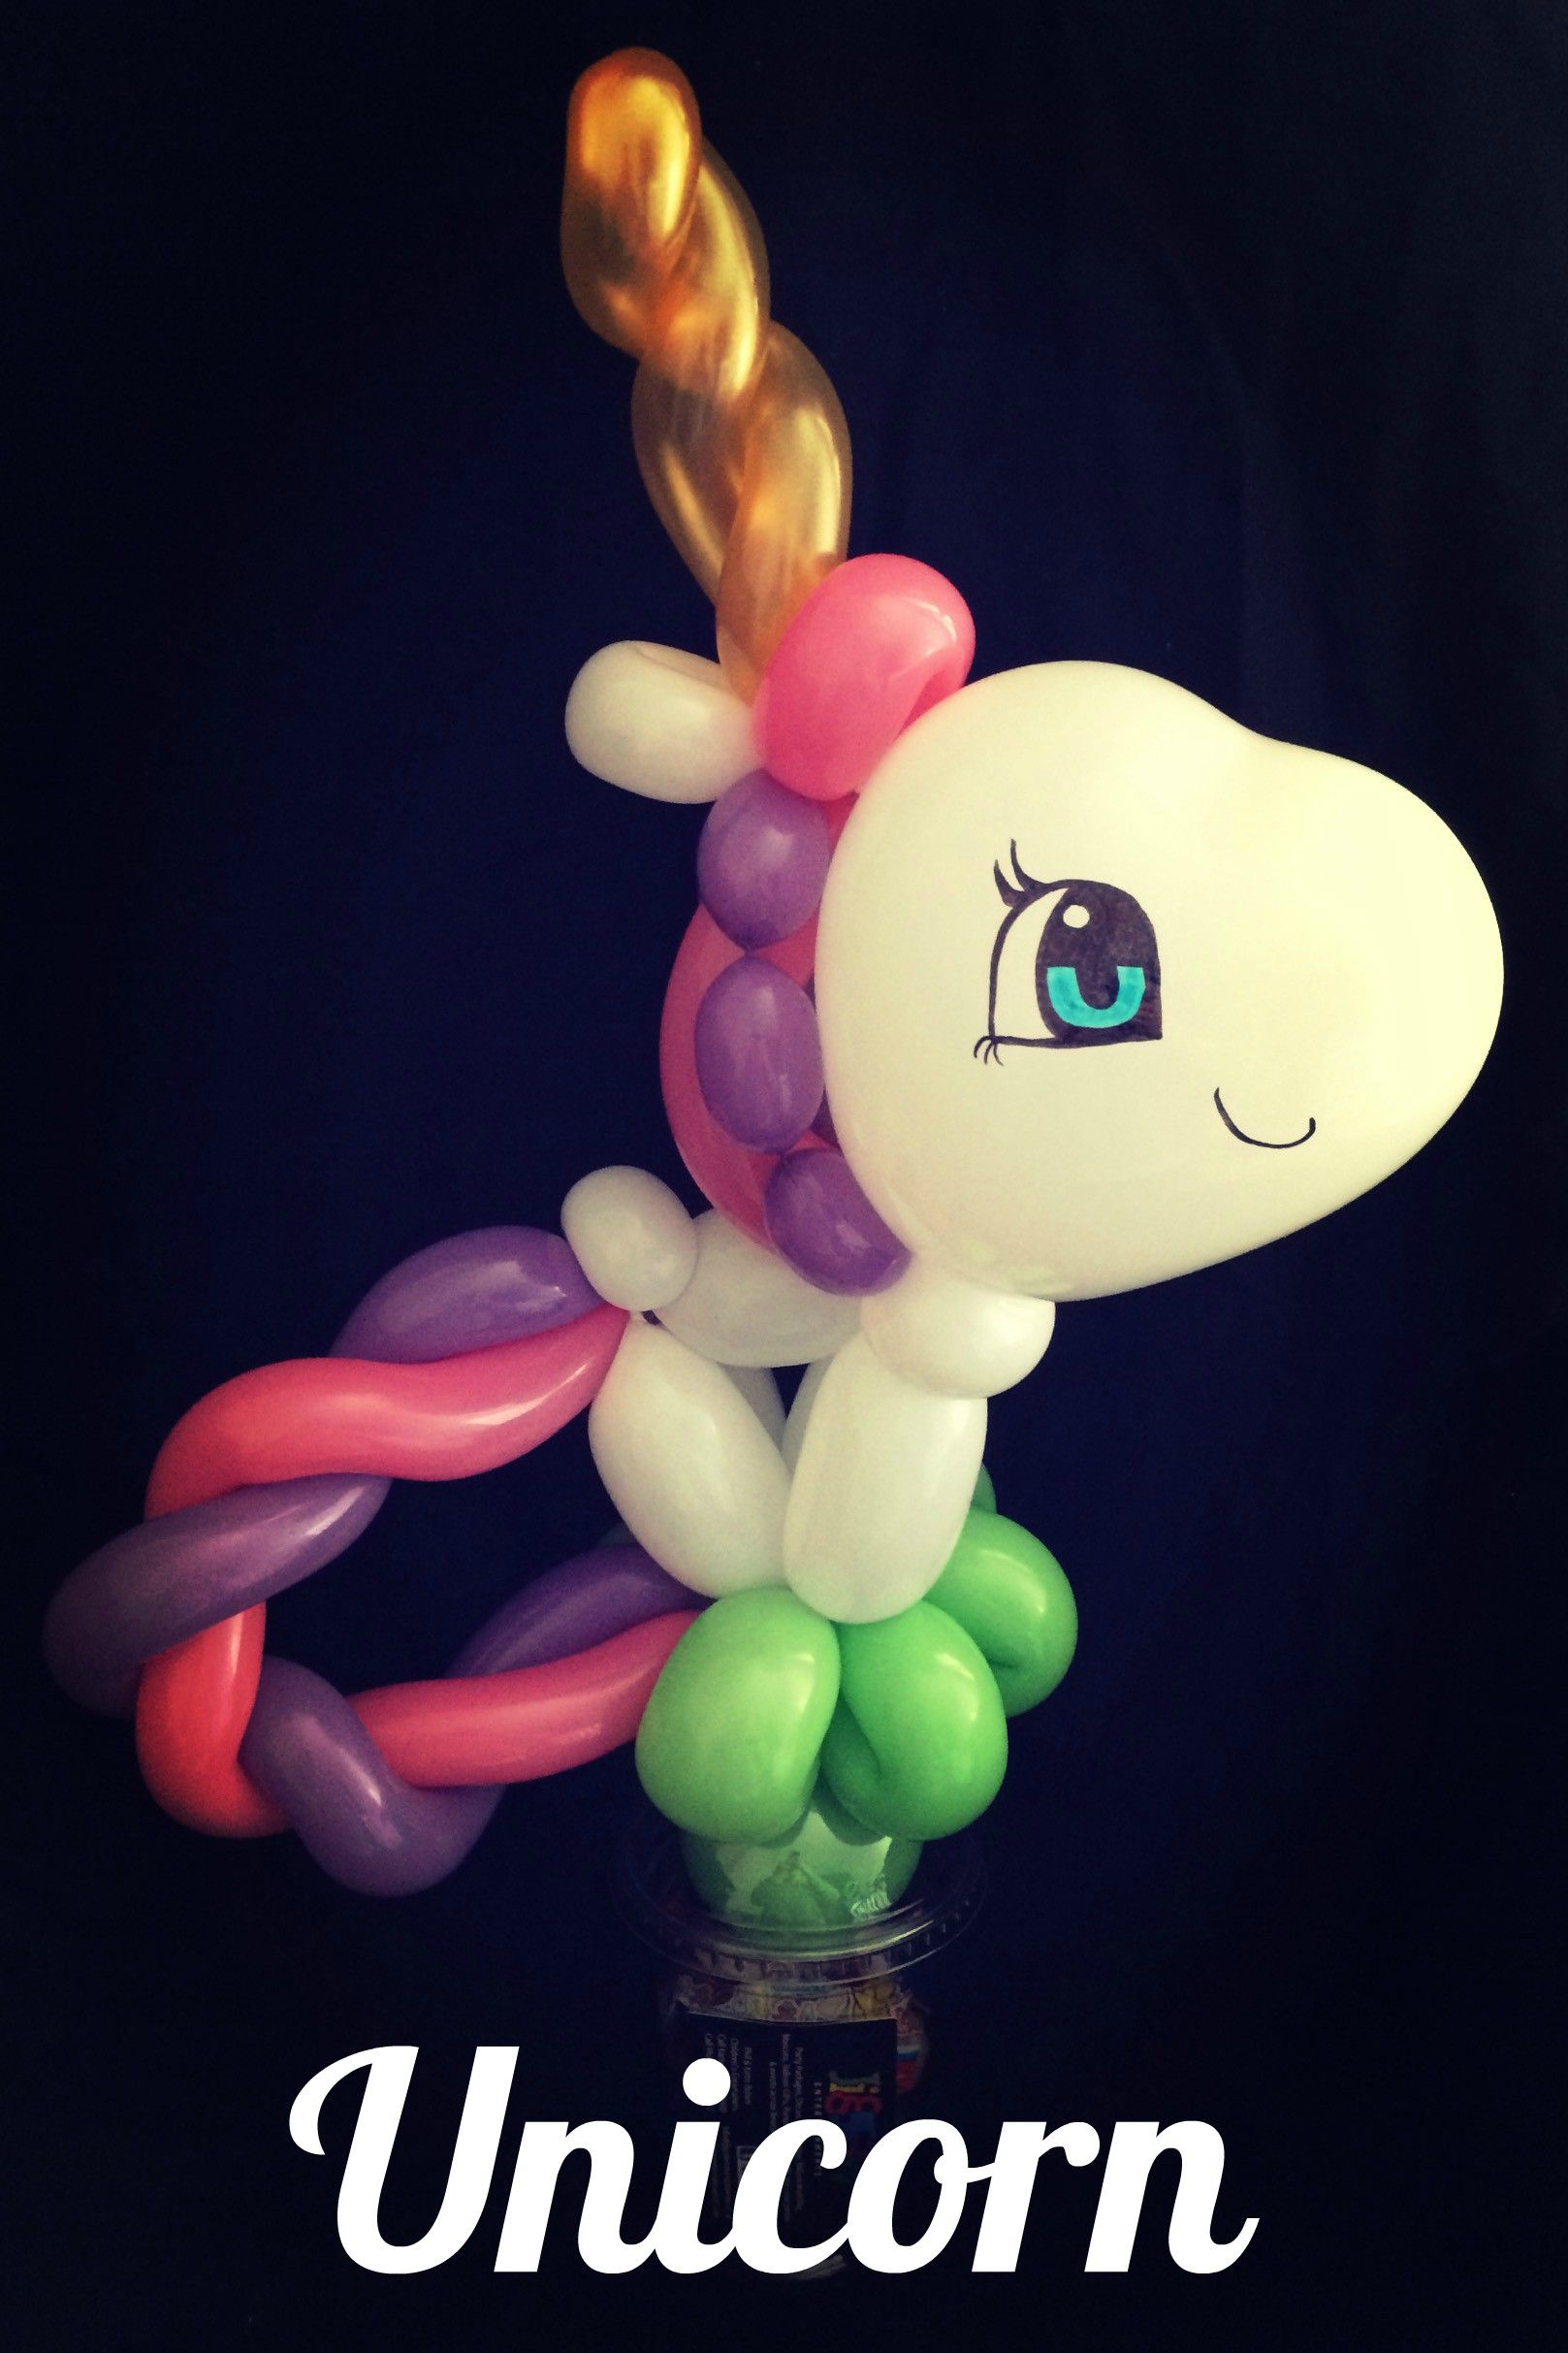 candy cup balloon animals